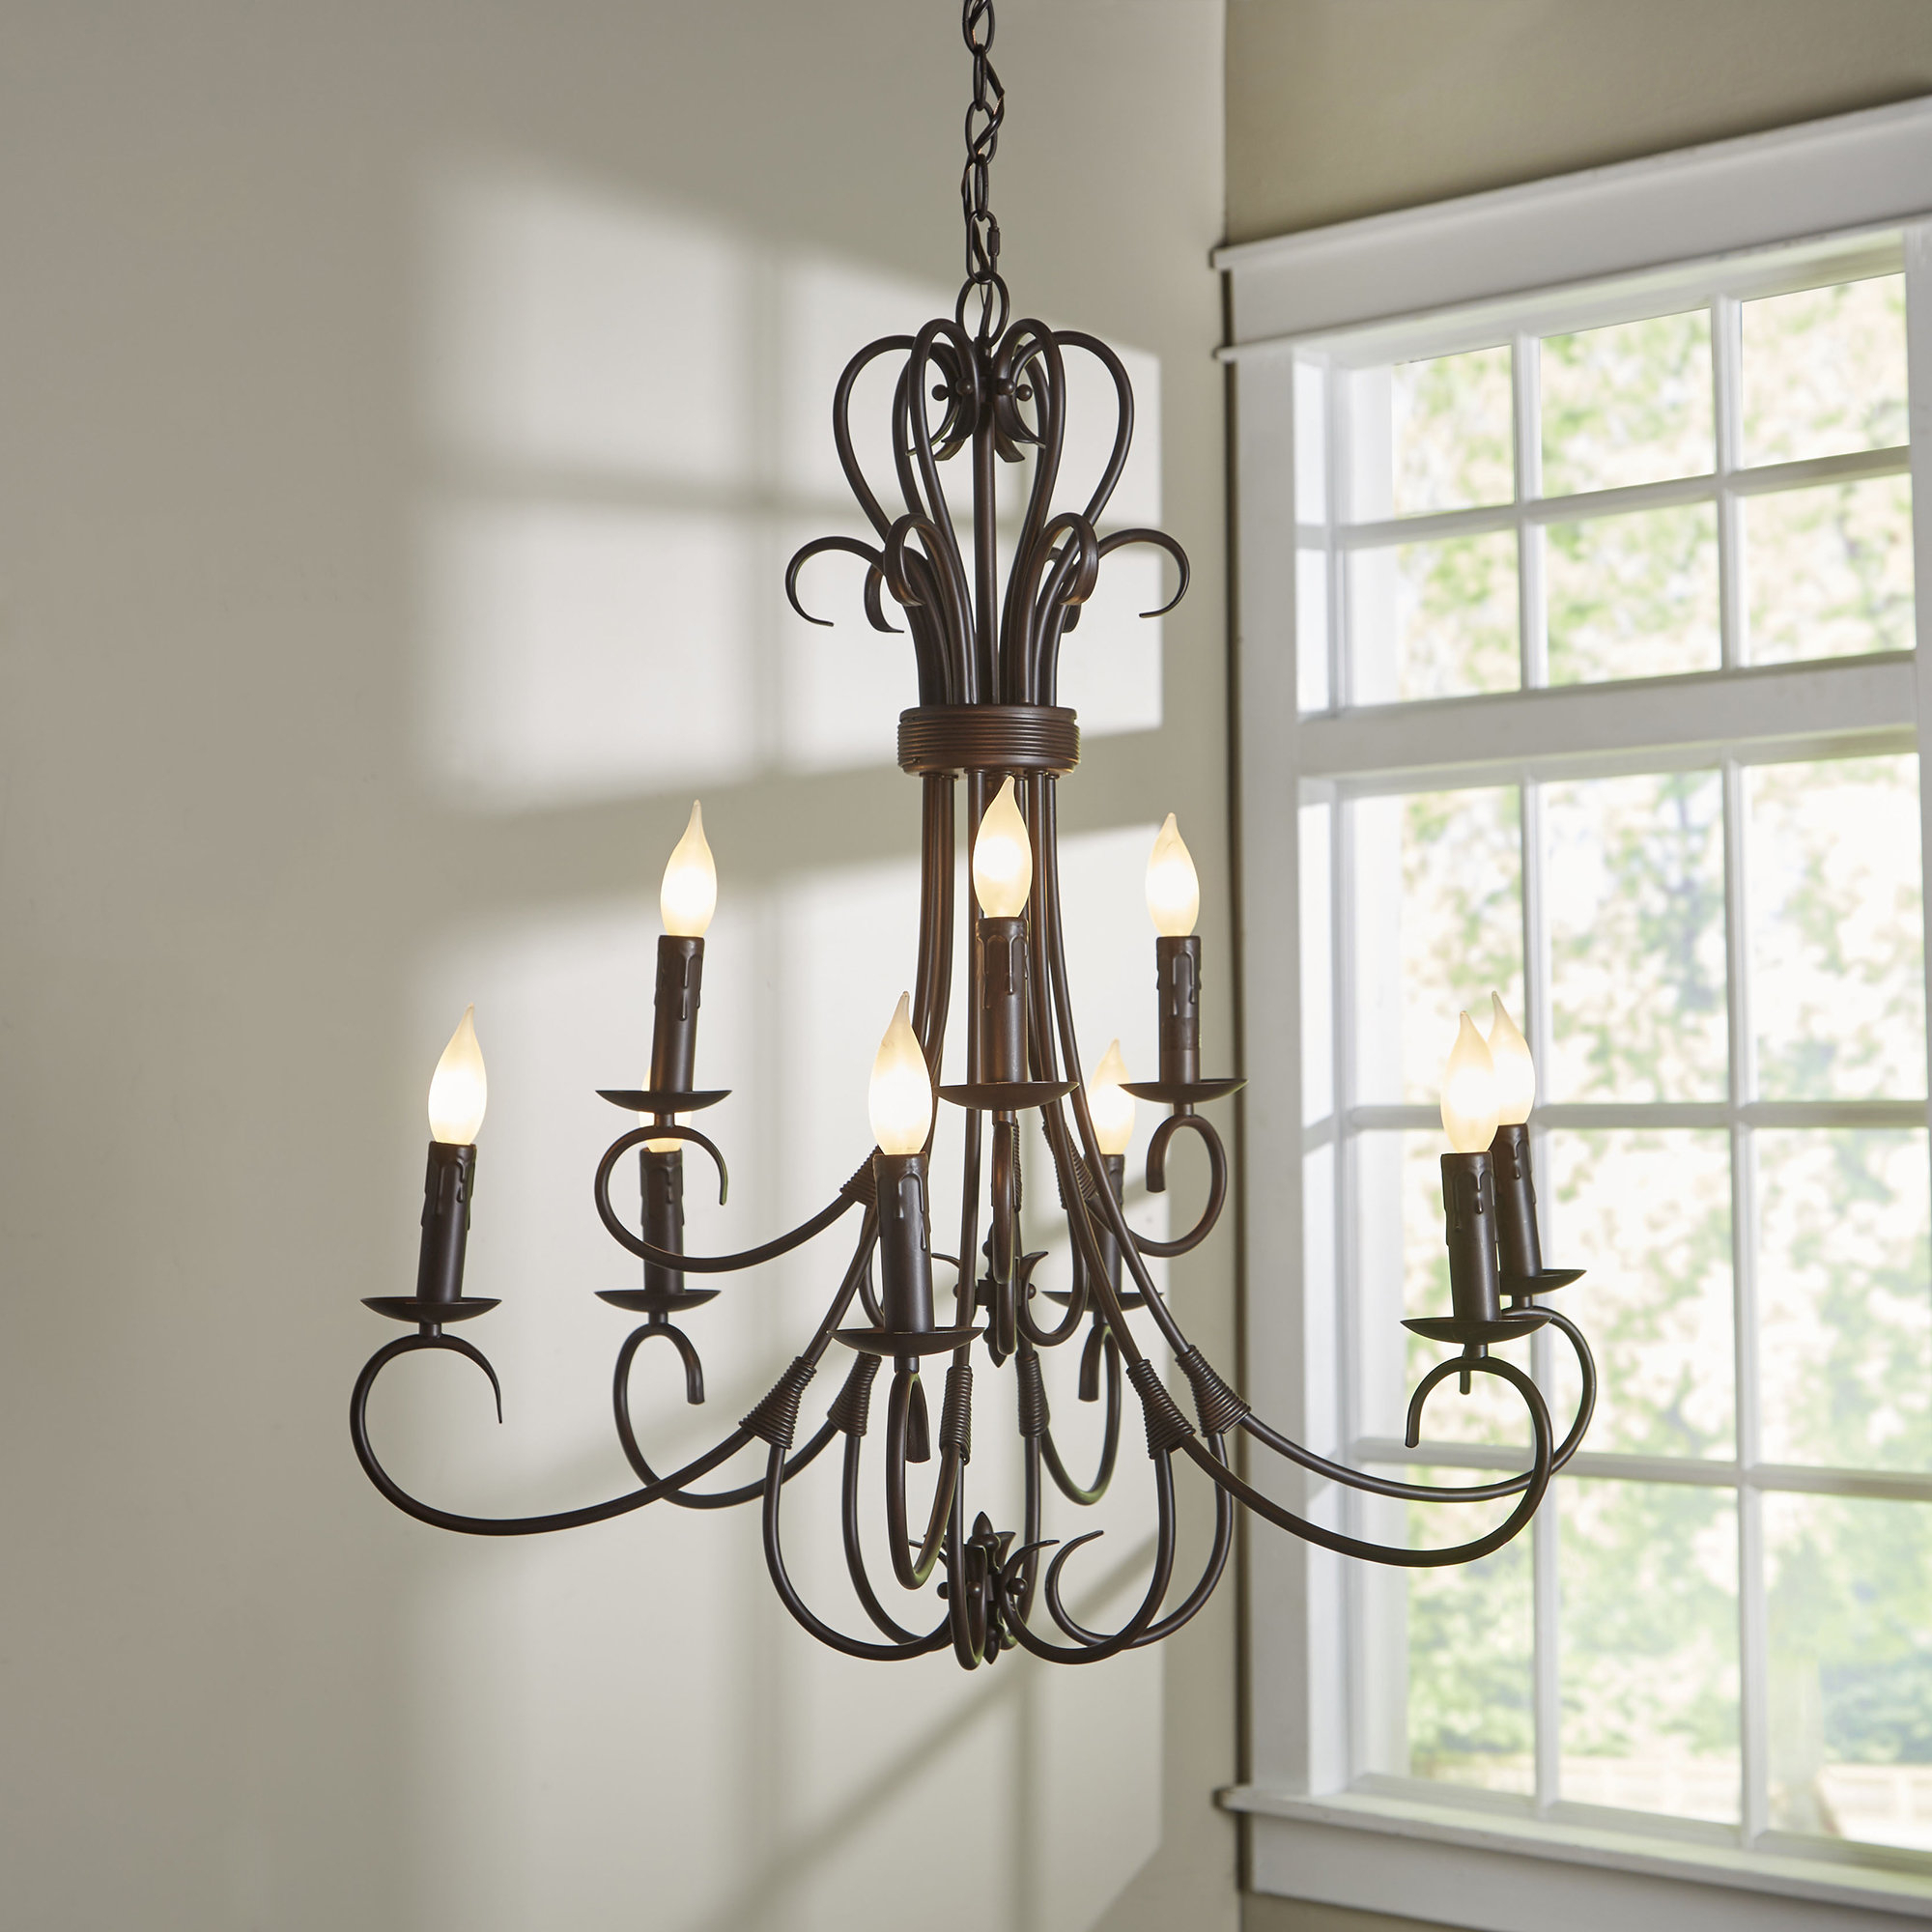 Alcott Hill Gaines 9 Light Candle Style Chandelier Within Current Gaines 9 Light Candle Style Chandeliers (Gallery 1 of 20)